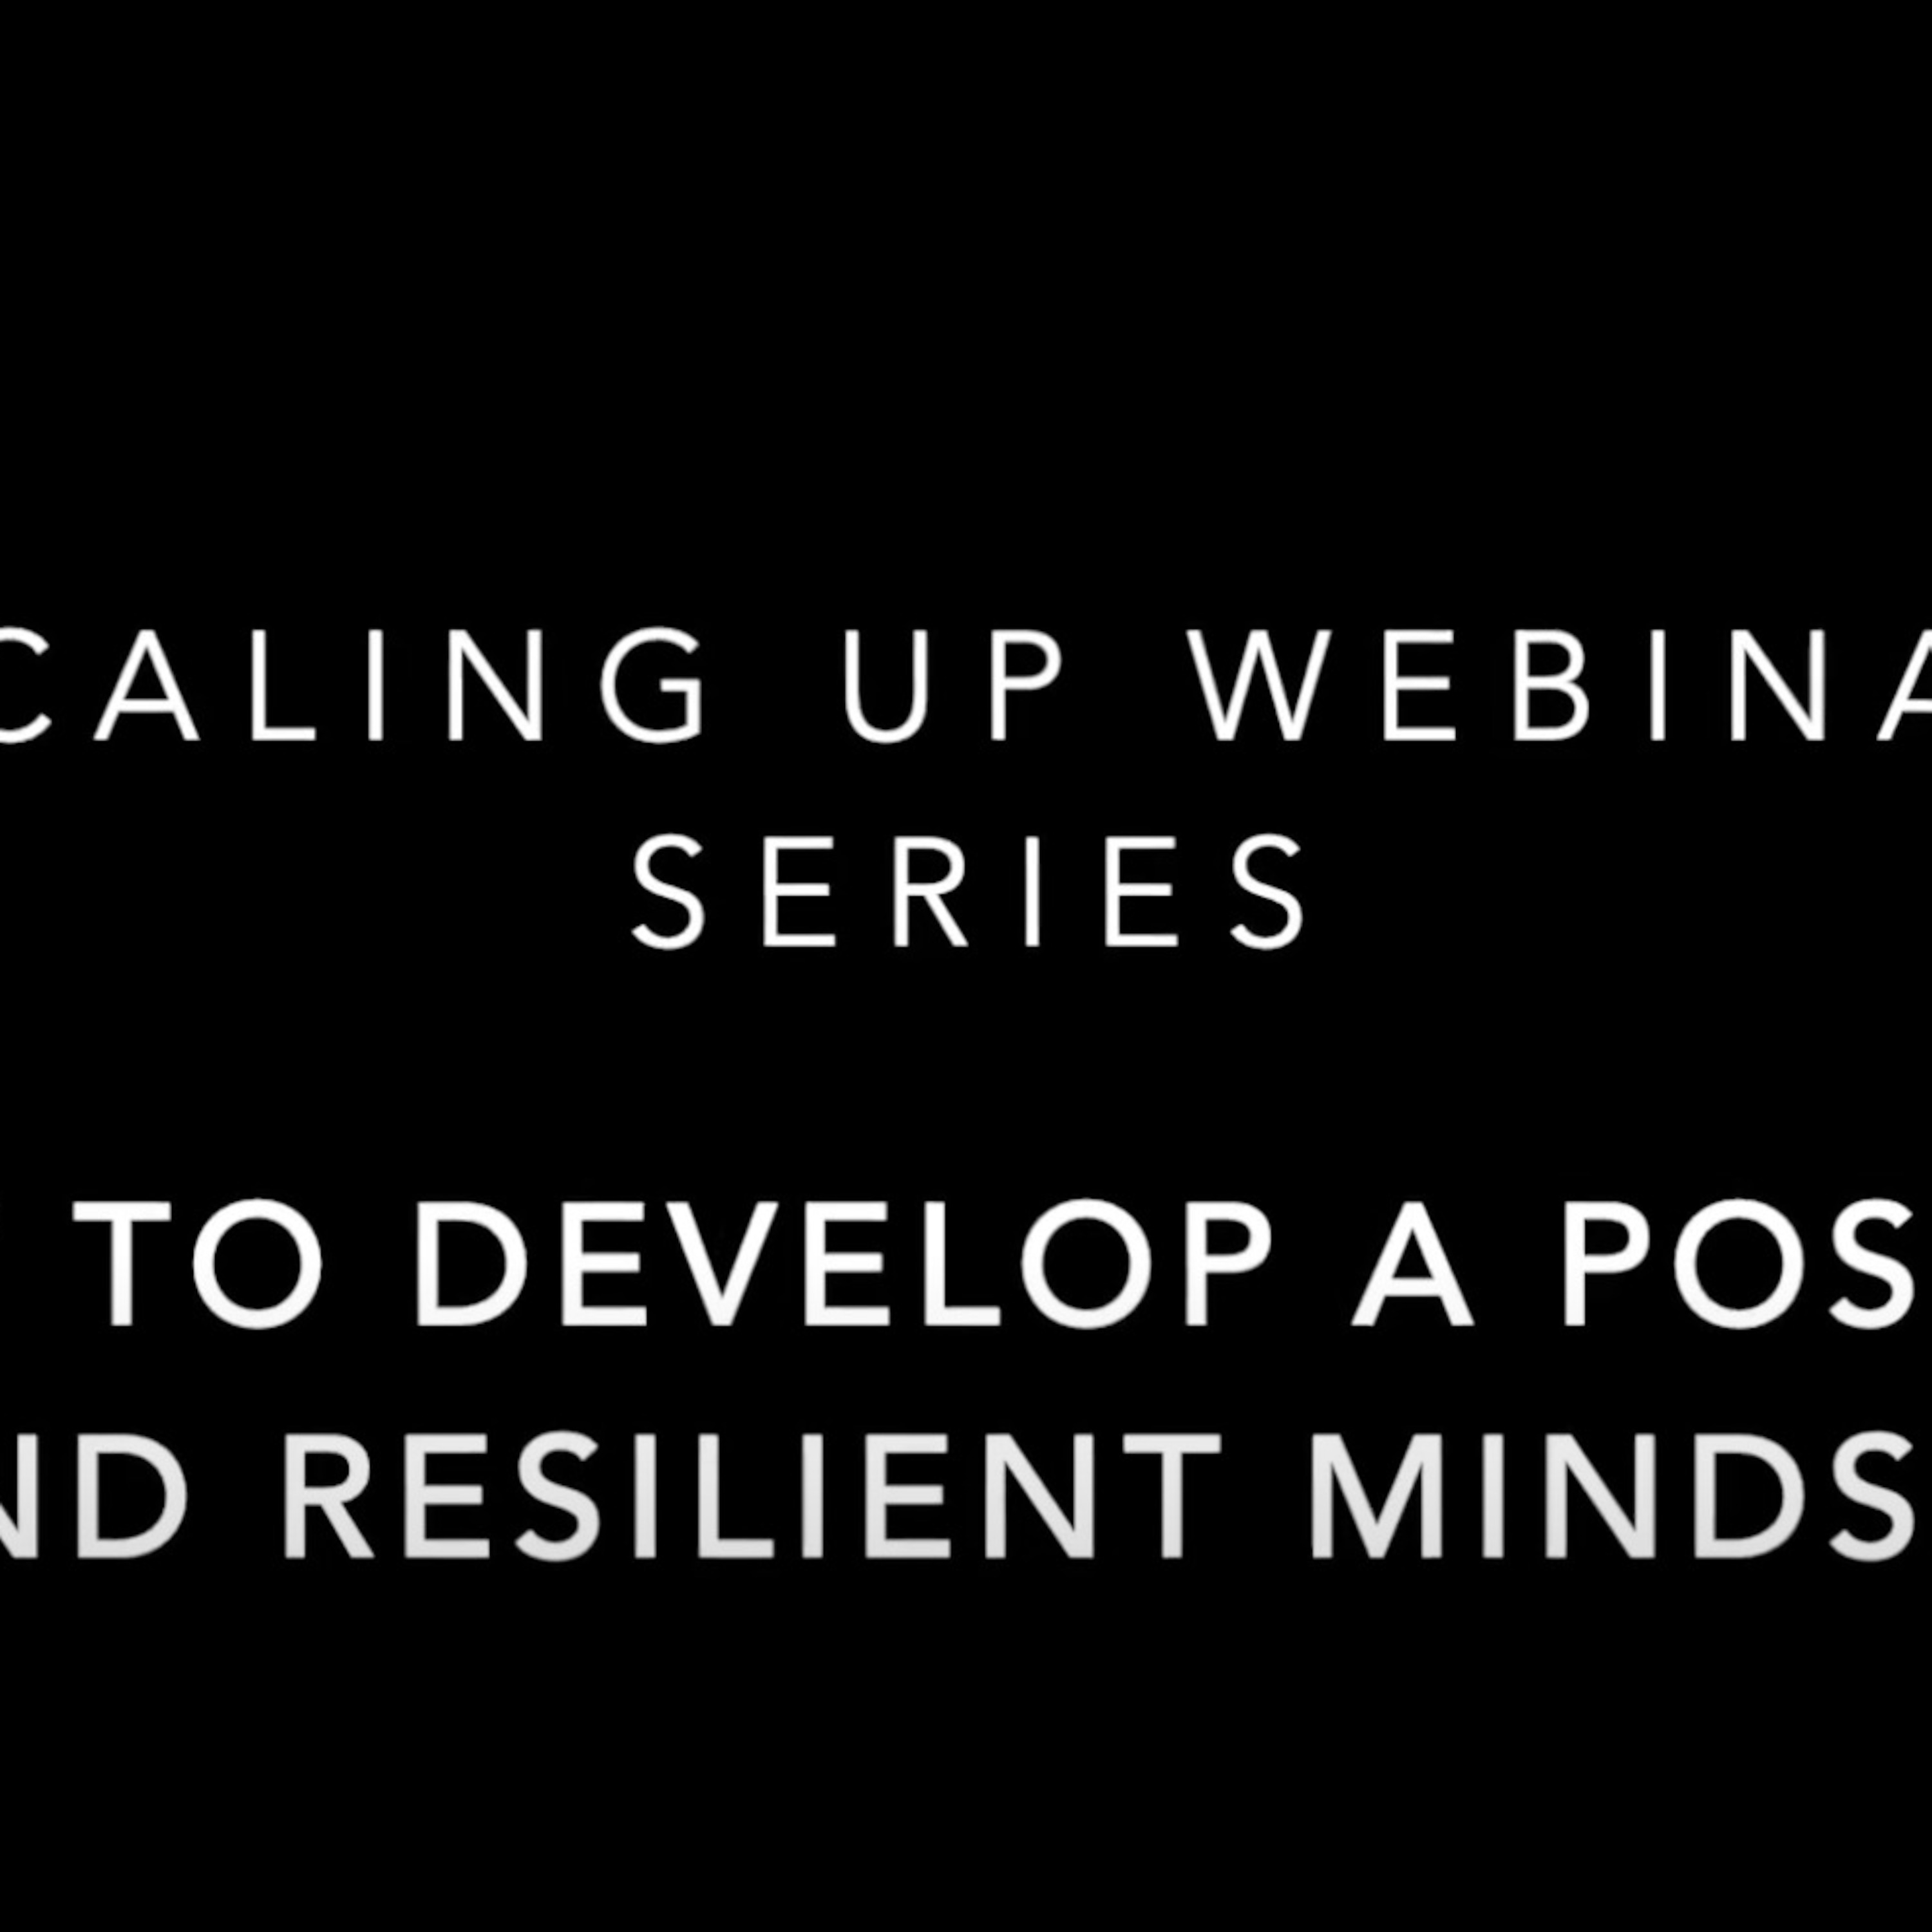 How to develop a positive and resilient mindset